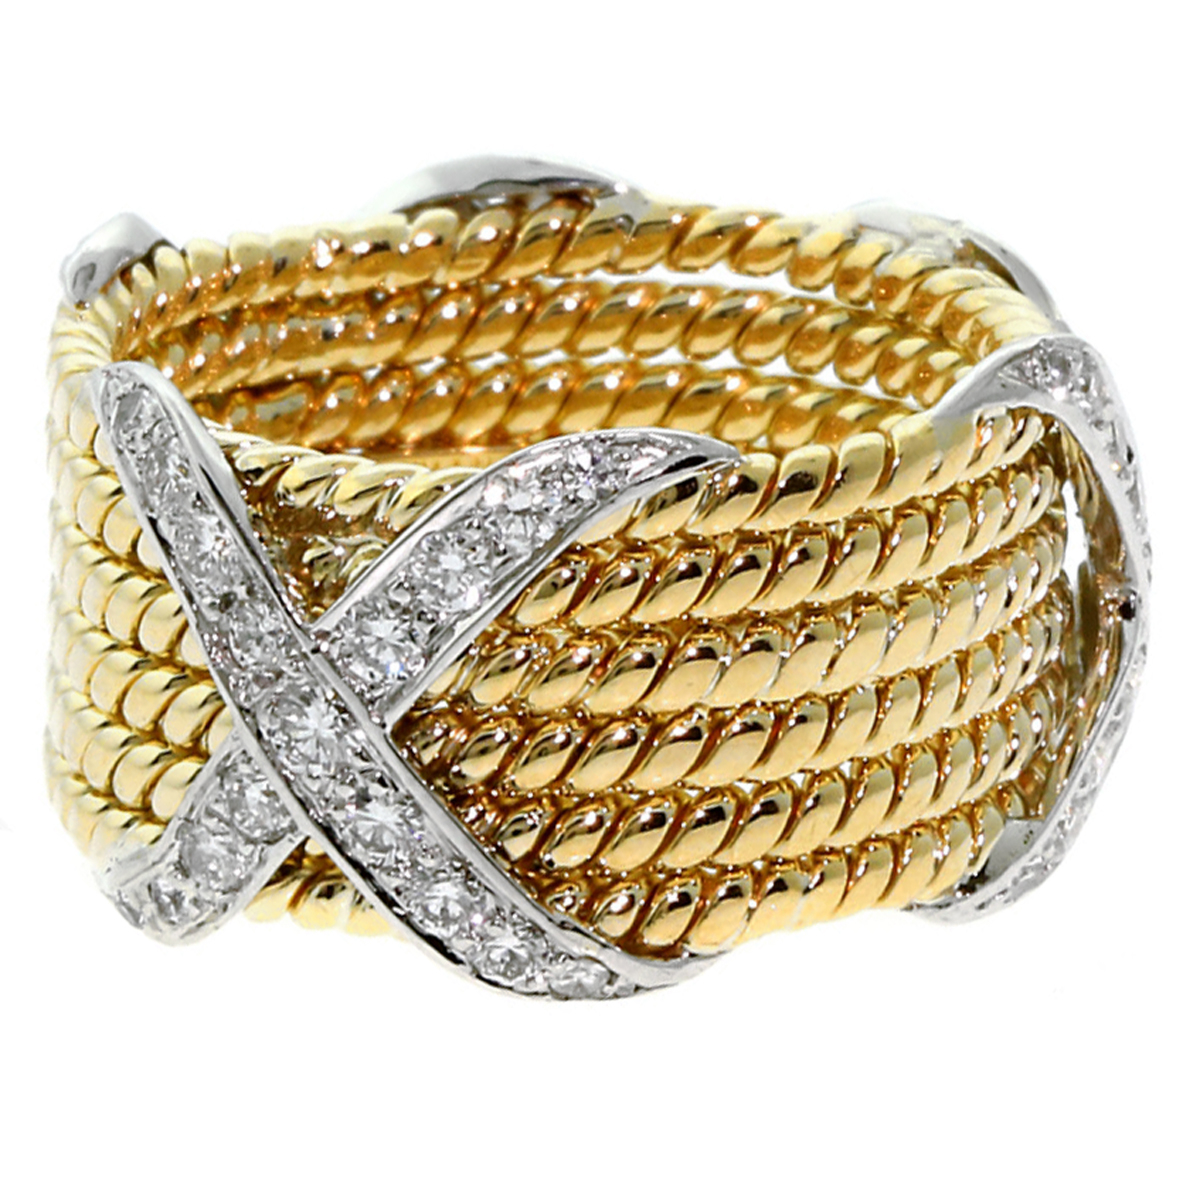 Tiffany & Co Schlumberger 6 Row Rope Diamond Ring